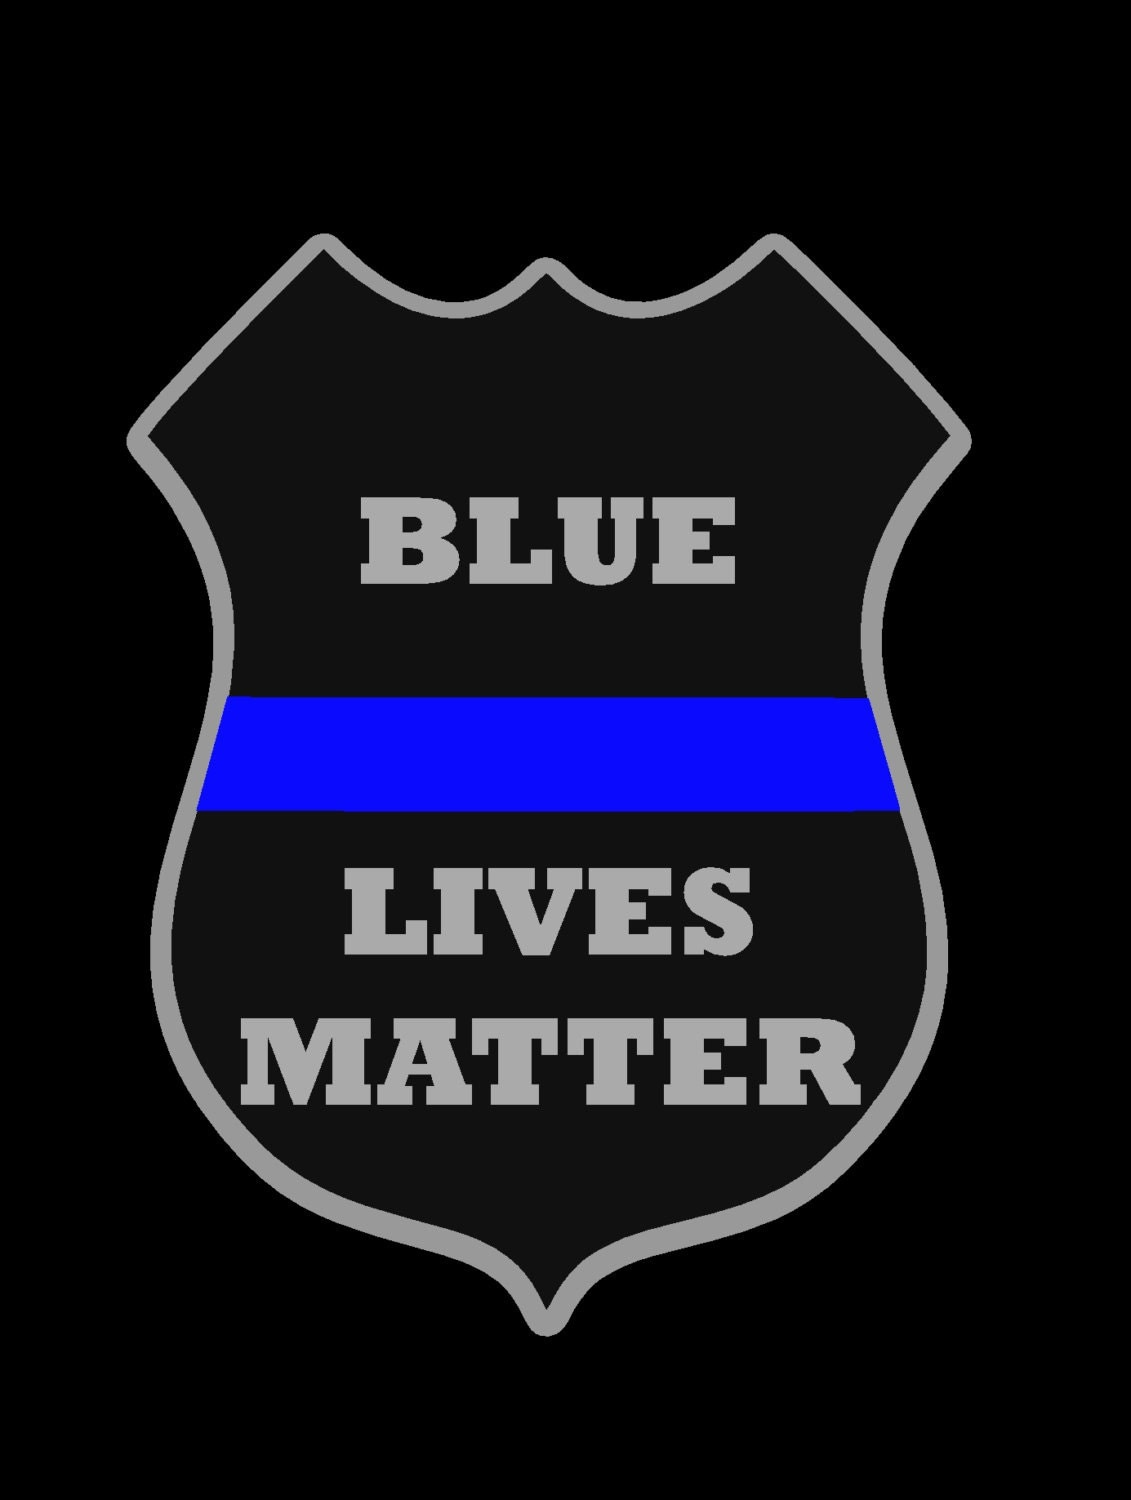 Blue Lives Matter Decal Police Badge Thin Blue Line Decal